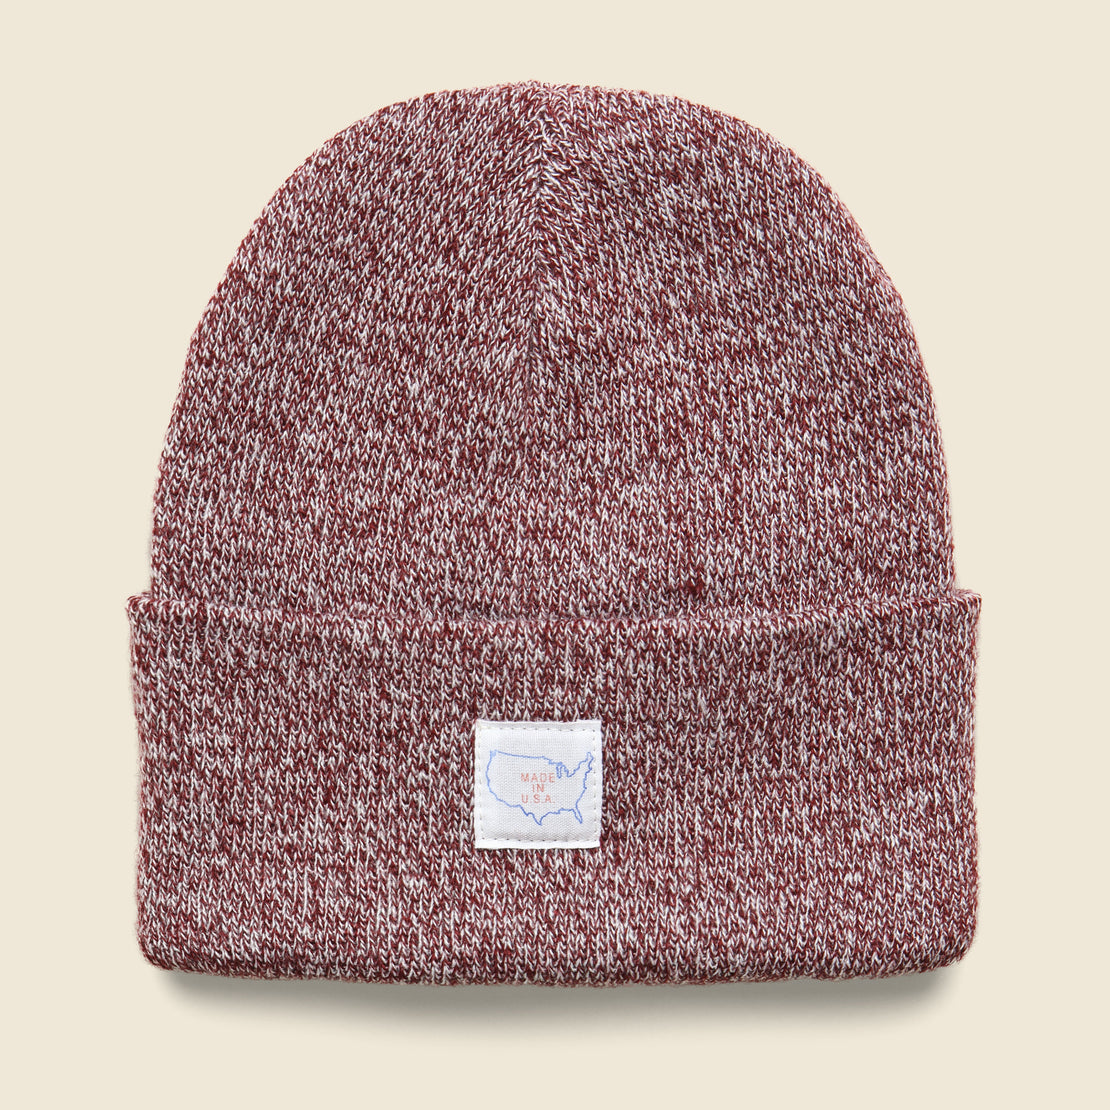 Save Khaki Marled Map Label Cap - Burgundy